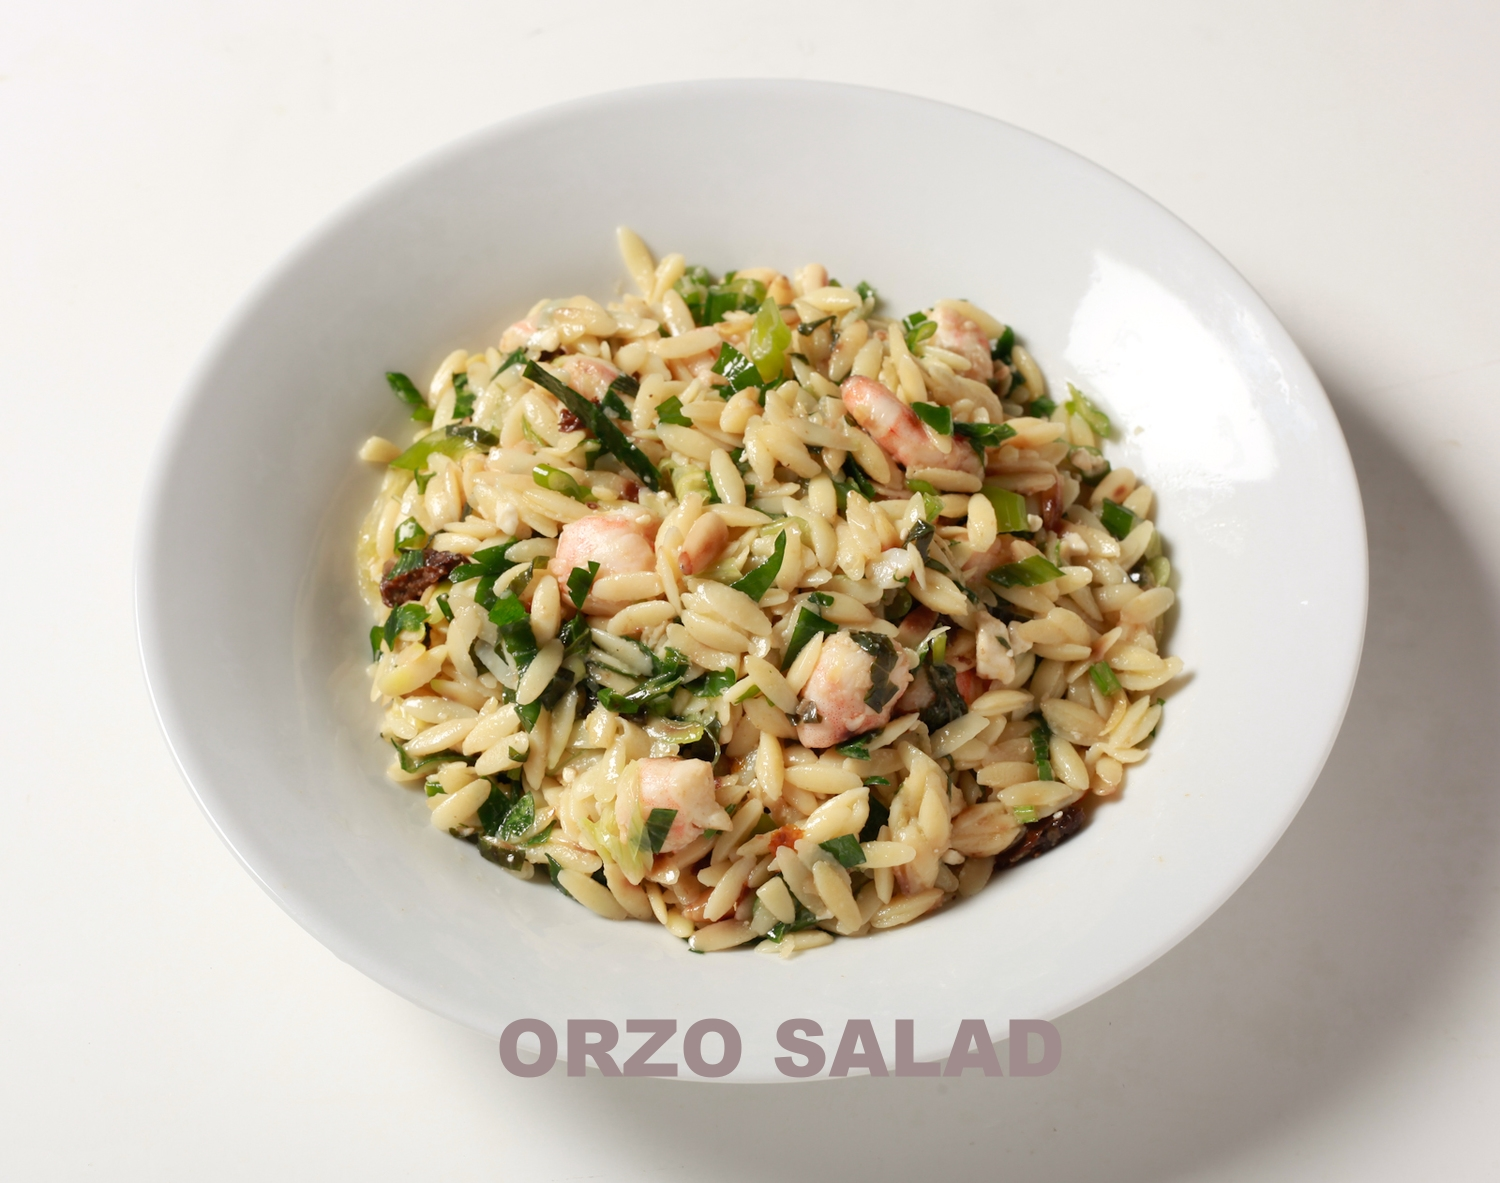 SanFranciscoFishCo,OrzoSalad,1-2lb (3 of 3).jpg